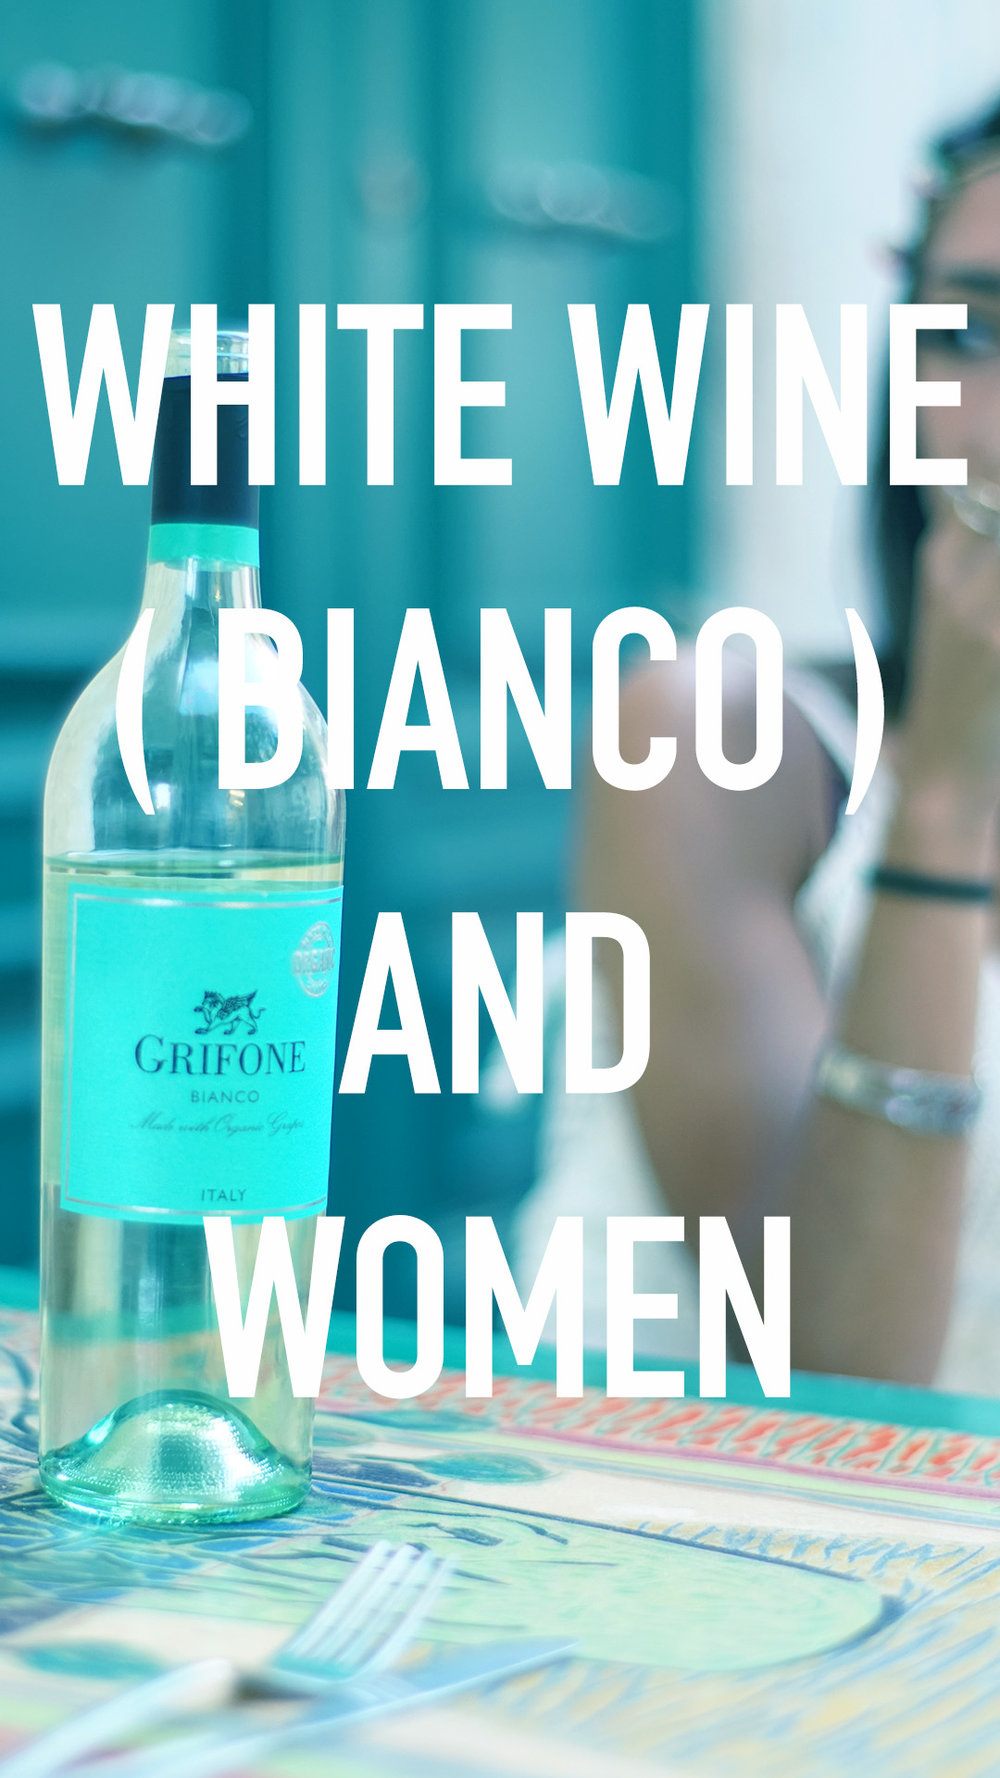 white wine and women #grifonewine #wineofitaly